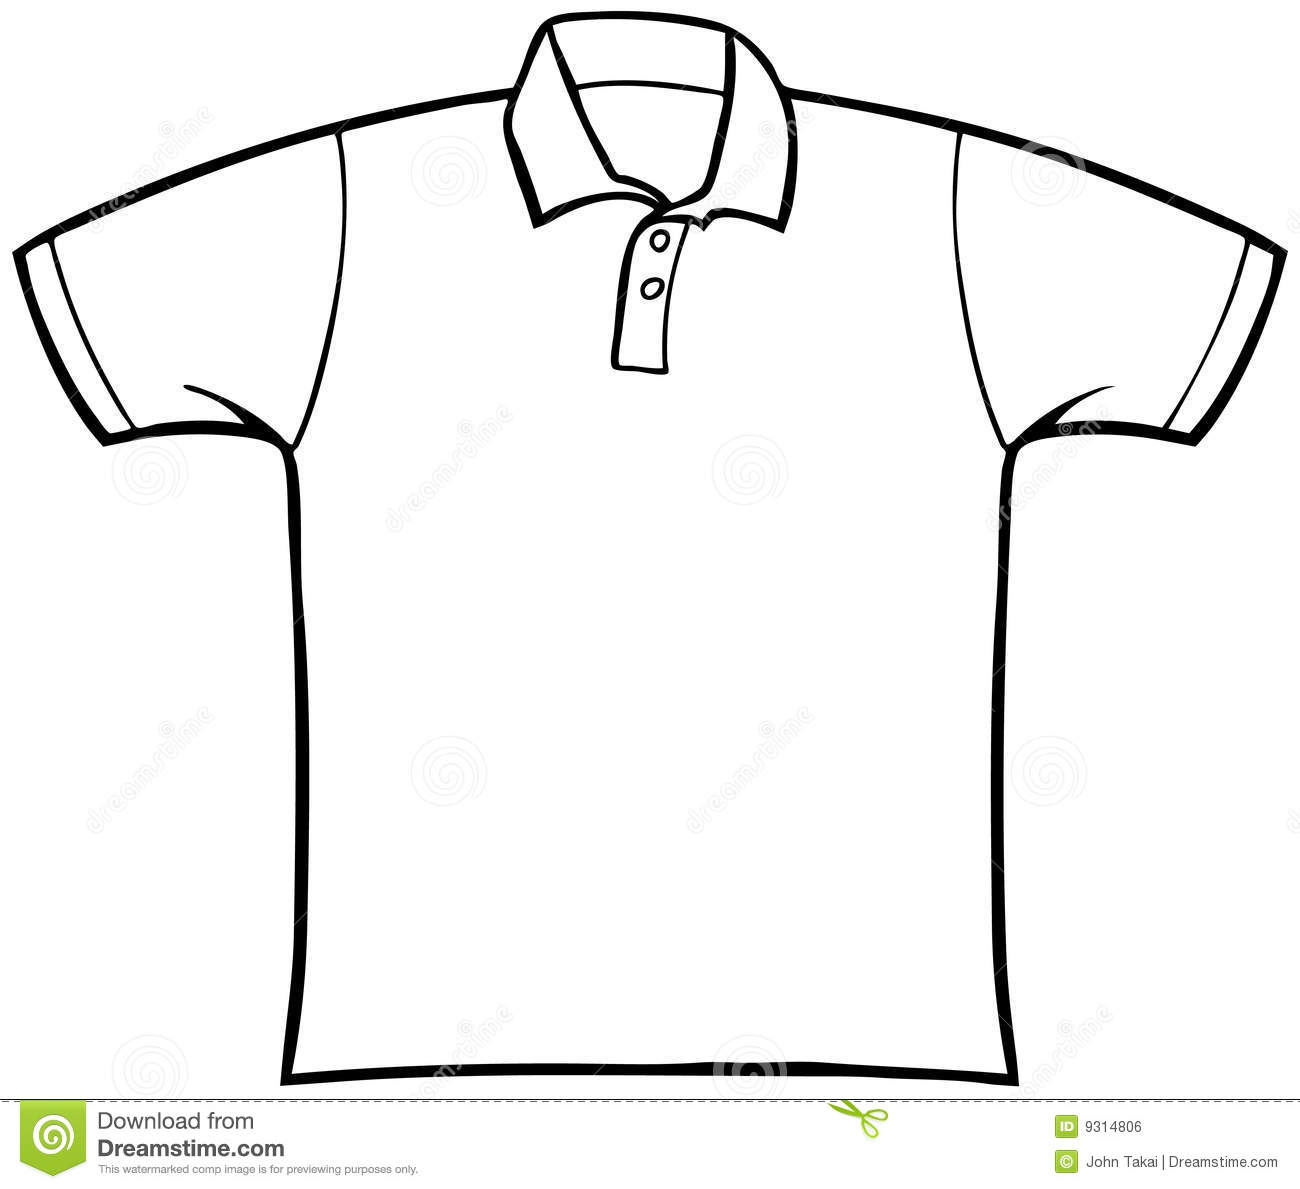 T Shirt Design Line Art : Collared t shirt stock vector illustration of clothing